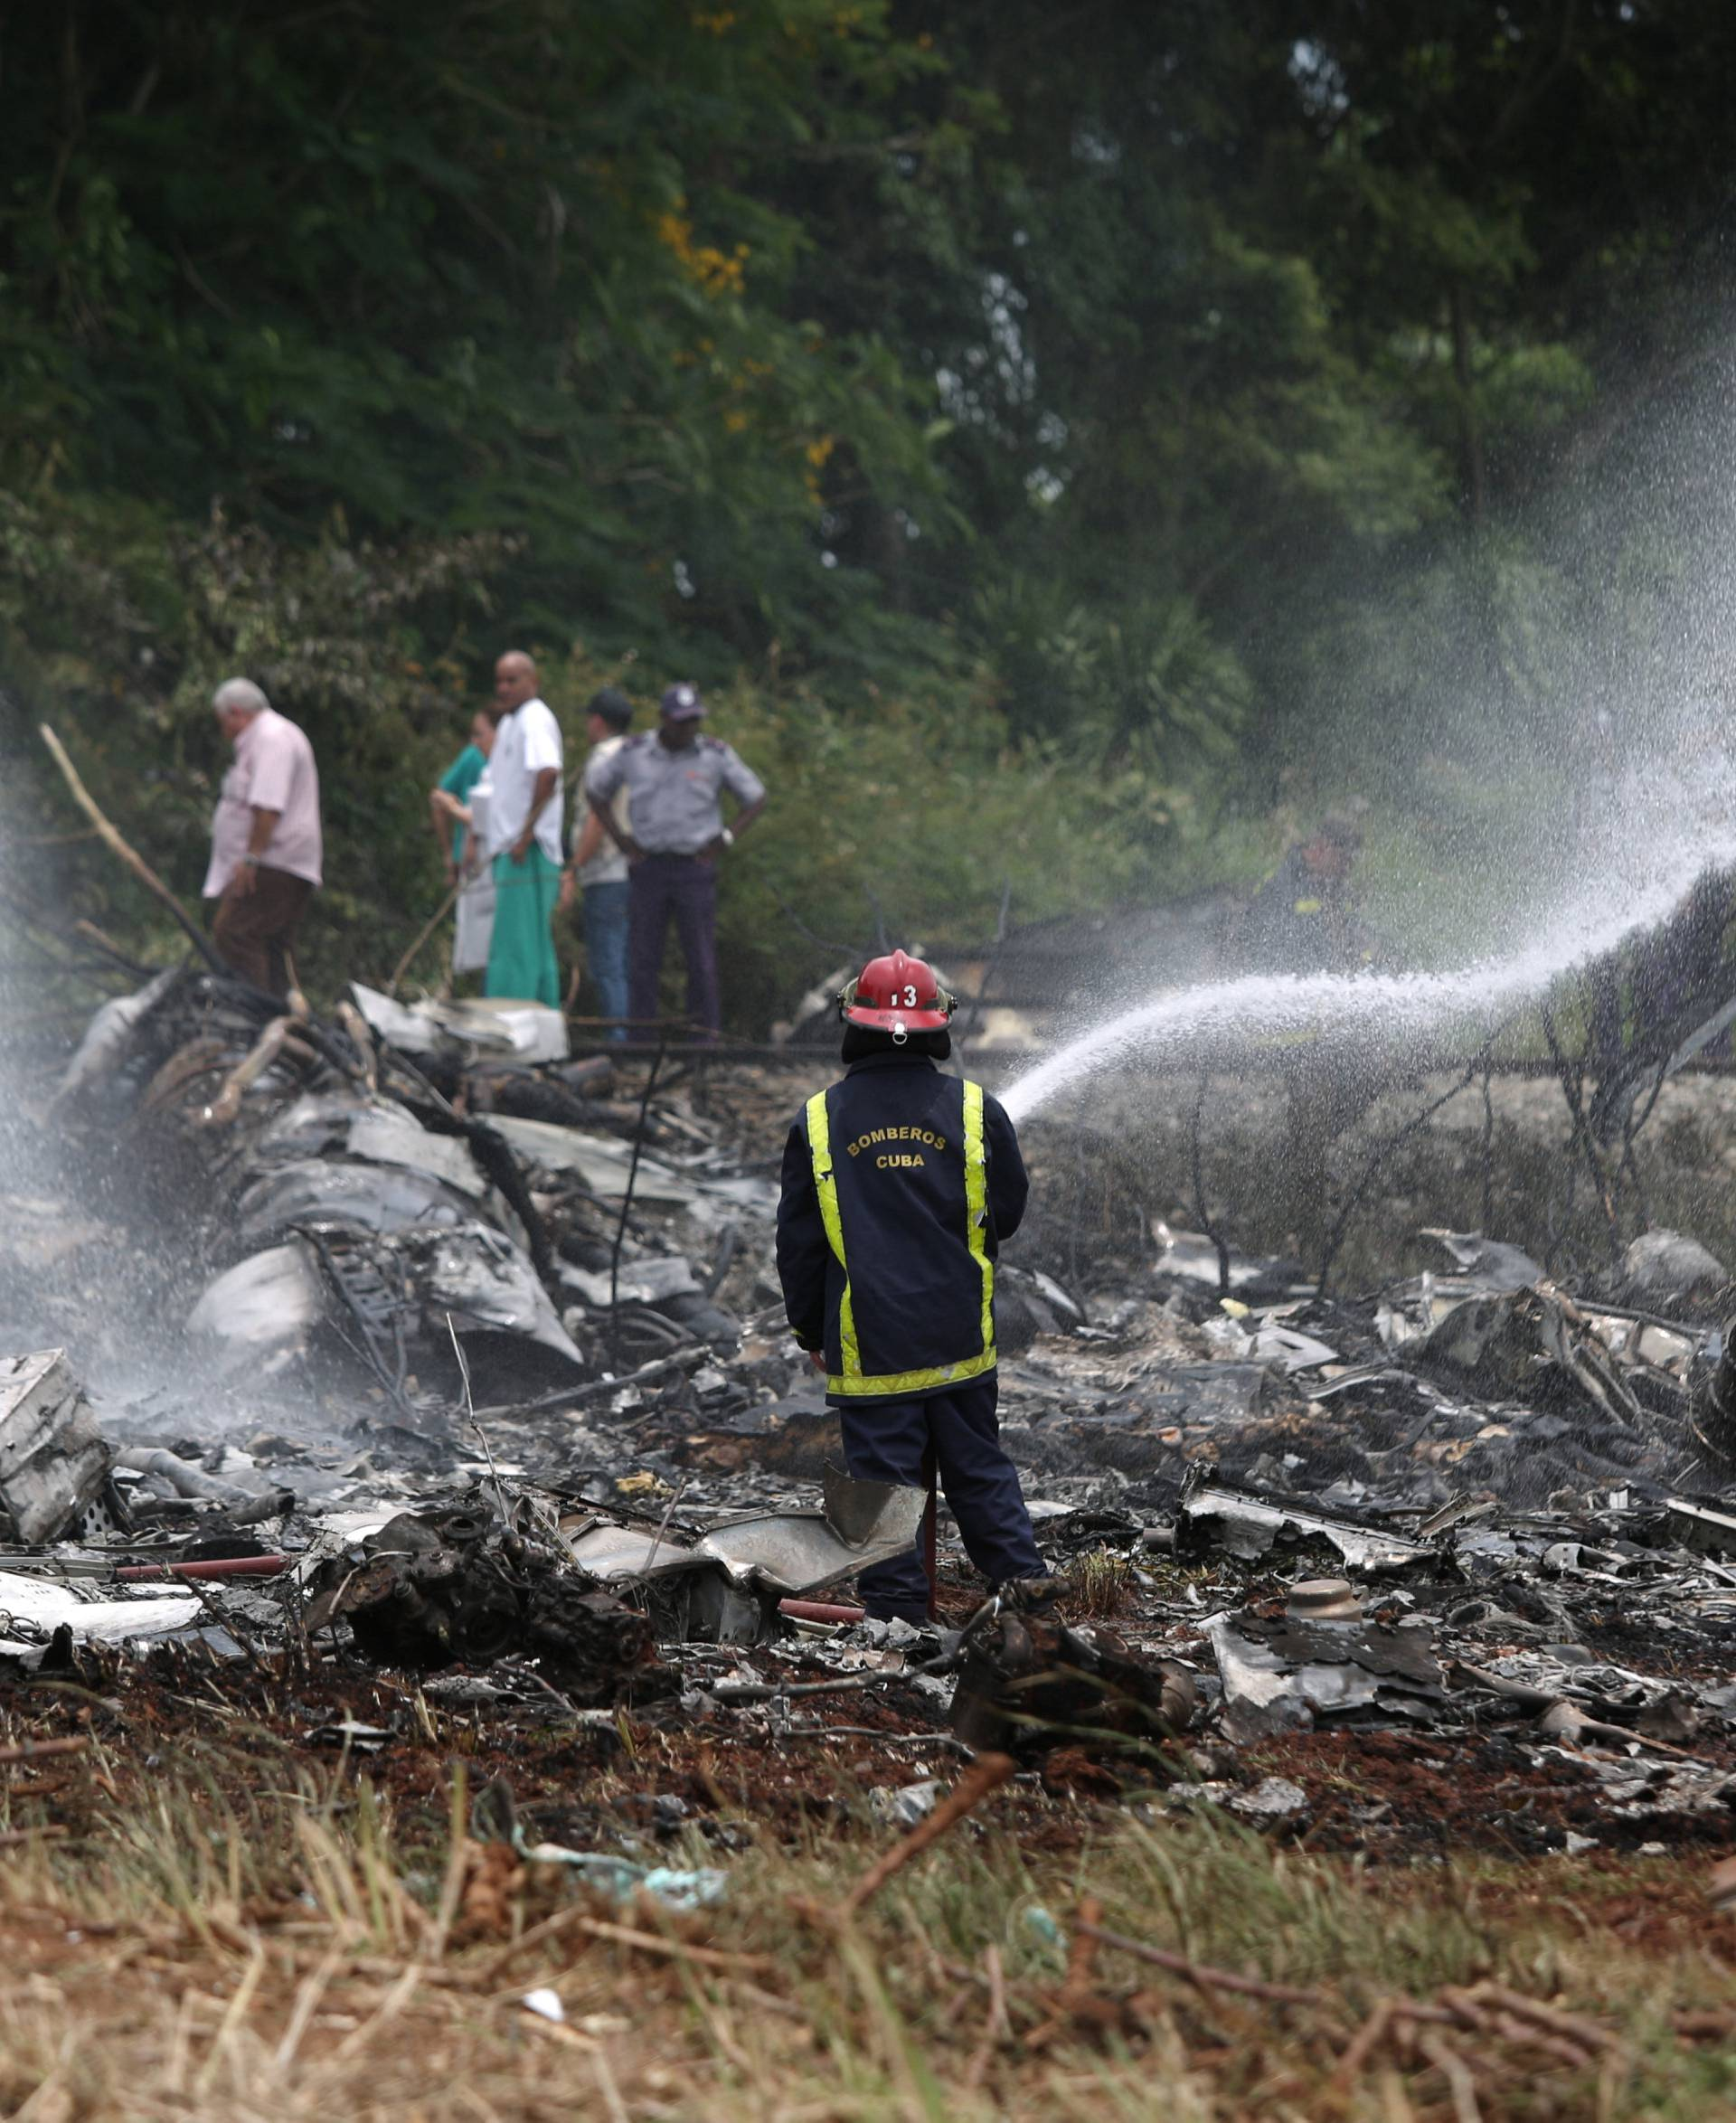 A fire fighter works in the wreckage of a Boeing 737 plane that crashed  in the agricultural area of Boyeros, some 20 km (12 miles) south of Havana on Friday shortly after taking off from Havana's main airport in Cuba